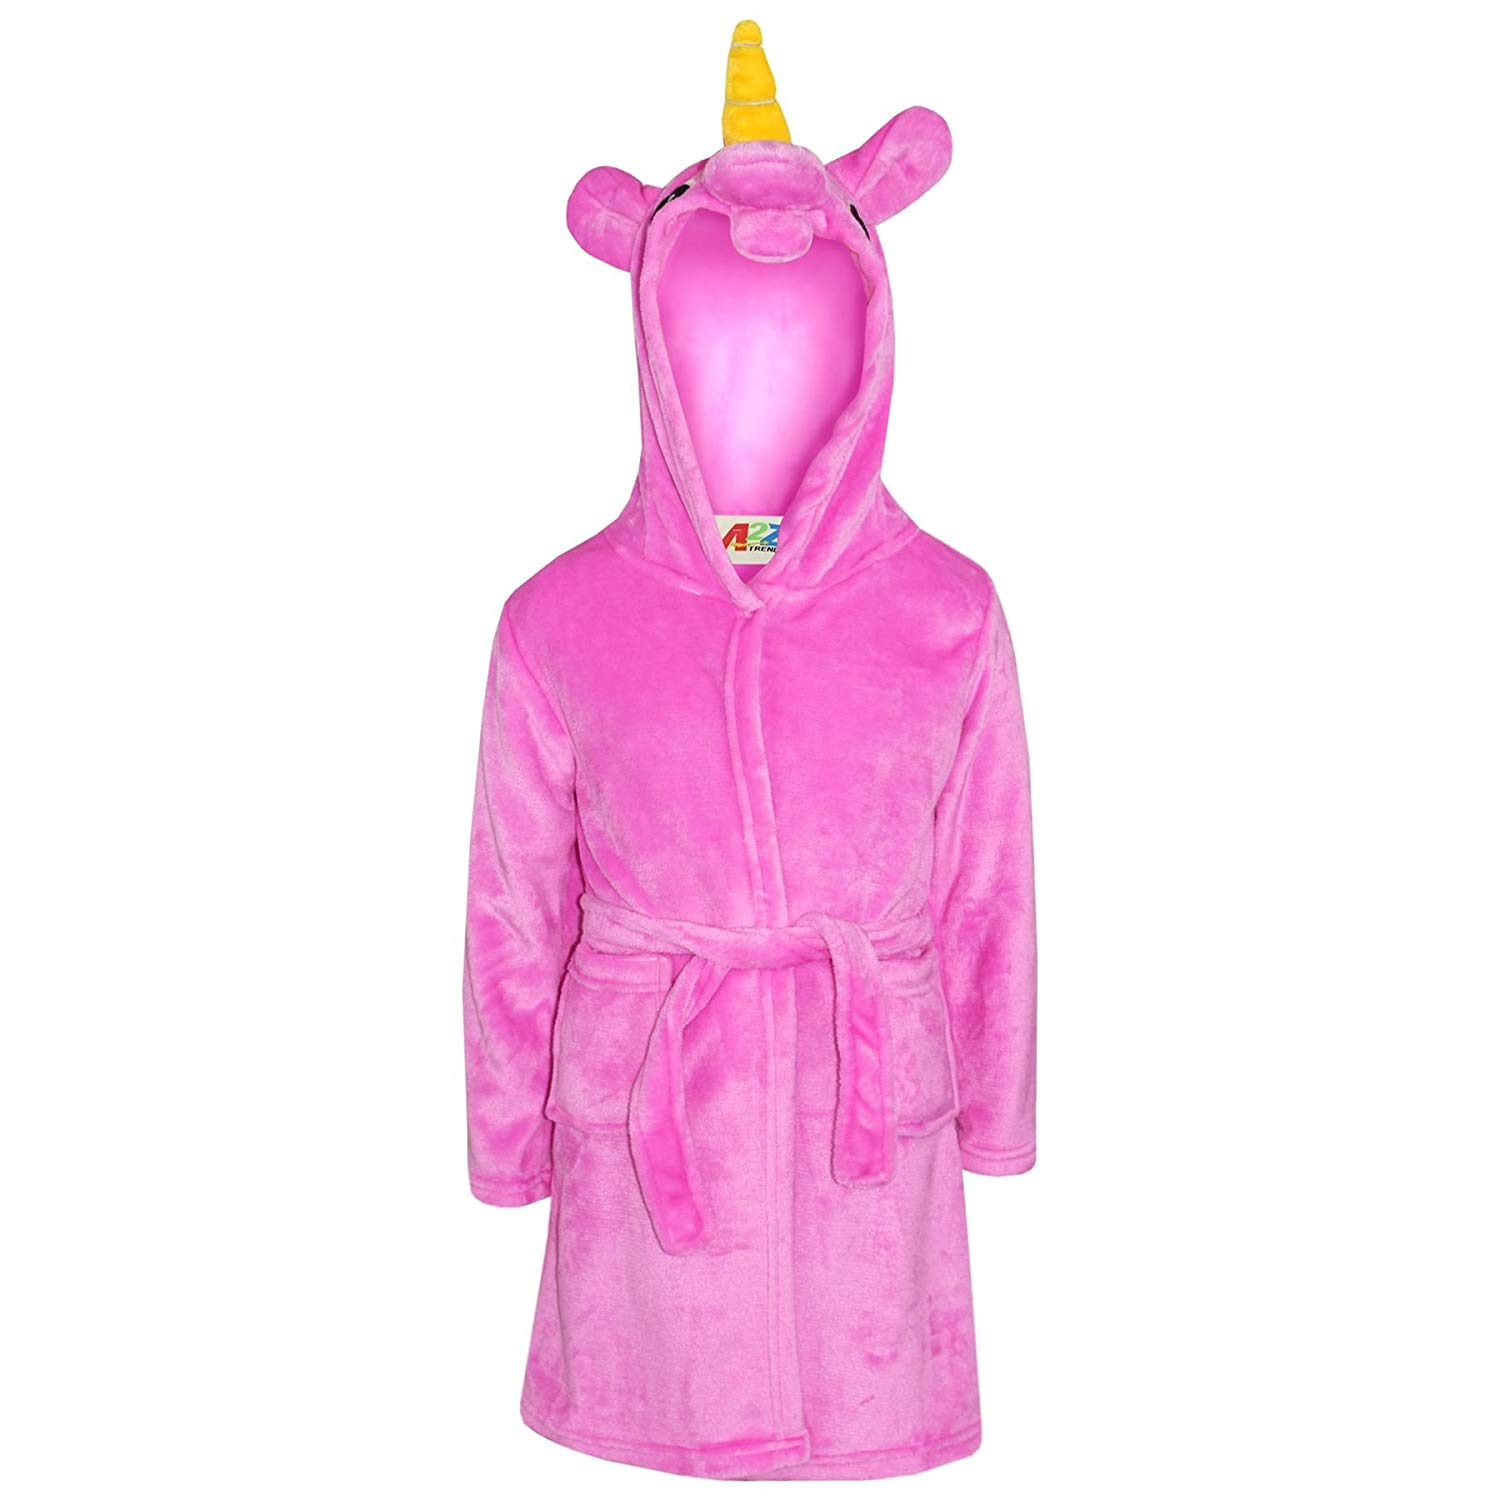 b46a1ad39c Get Quotations · Girls Bathrobe 3D Animal Unicorn Cerise Dressing Gown  Fleece Night Lounge Wear